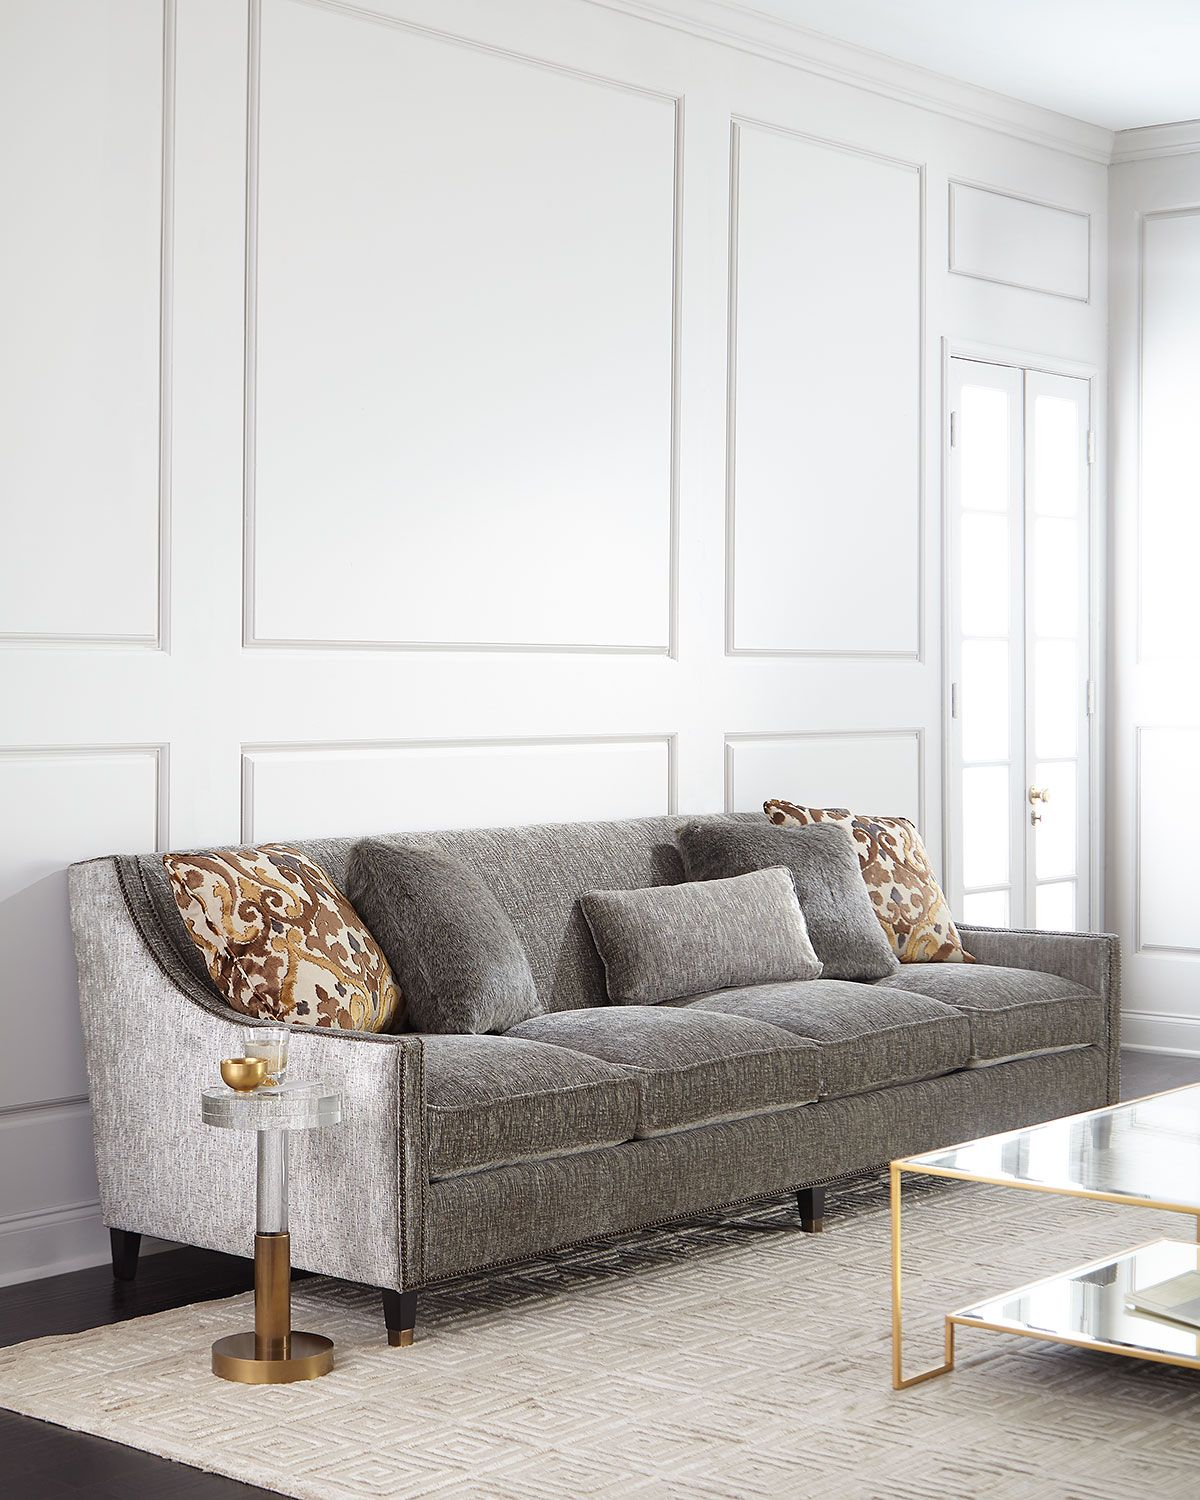 Bernhardt Palisades Extra Long Sofa 108 With Images Long Sofa Couch Design Long Couch